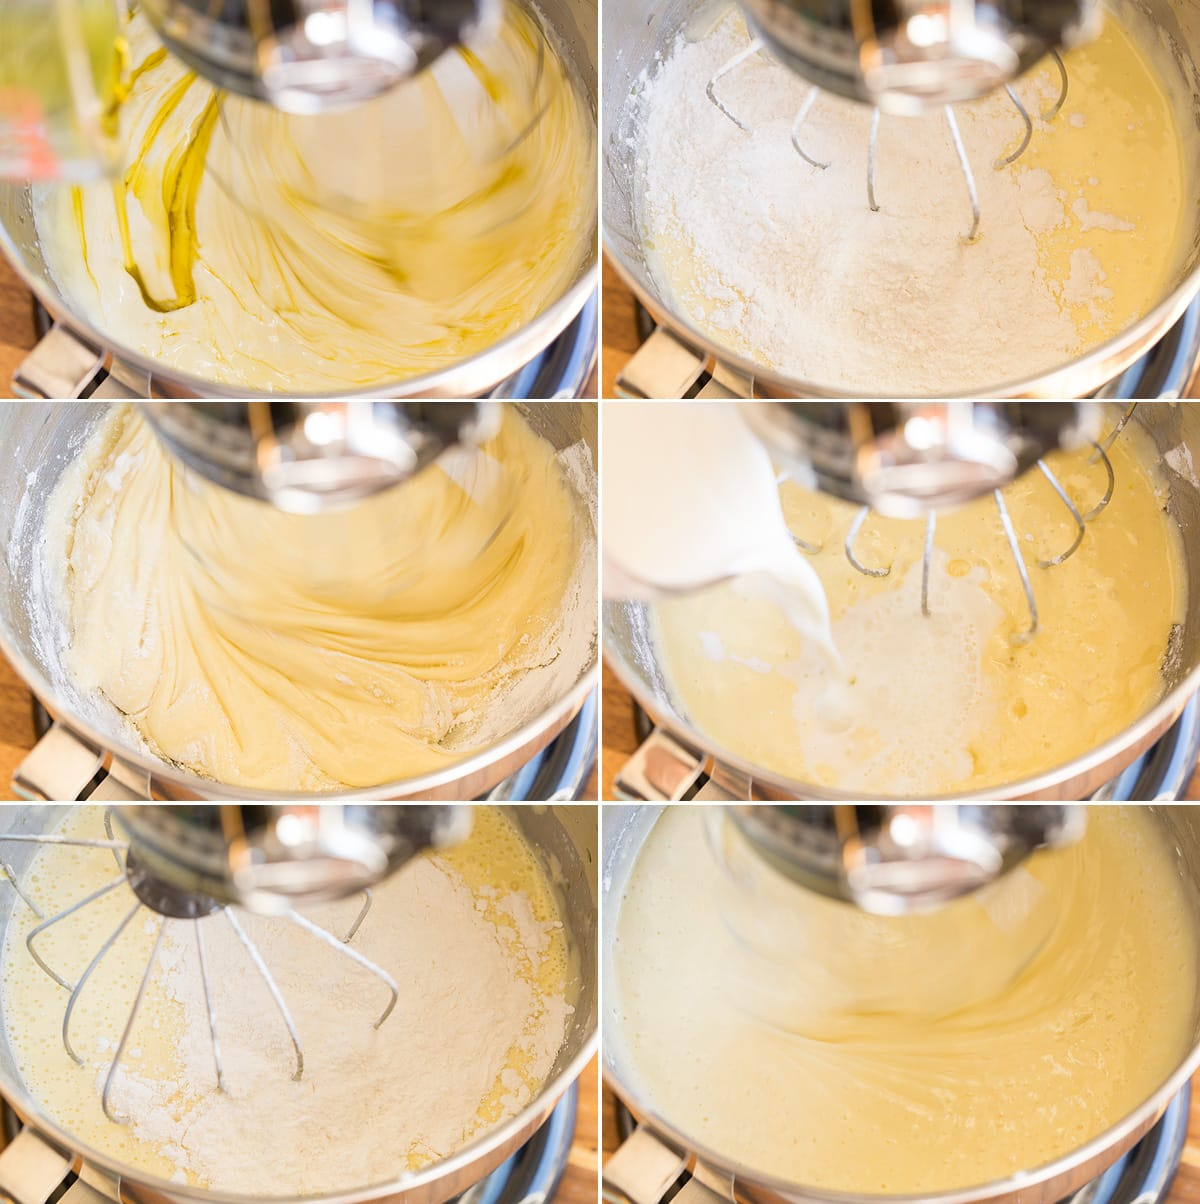 Collage of six images showing continued steps of making olive oil cake batter in mixer bowl.